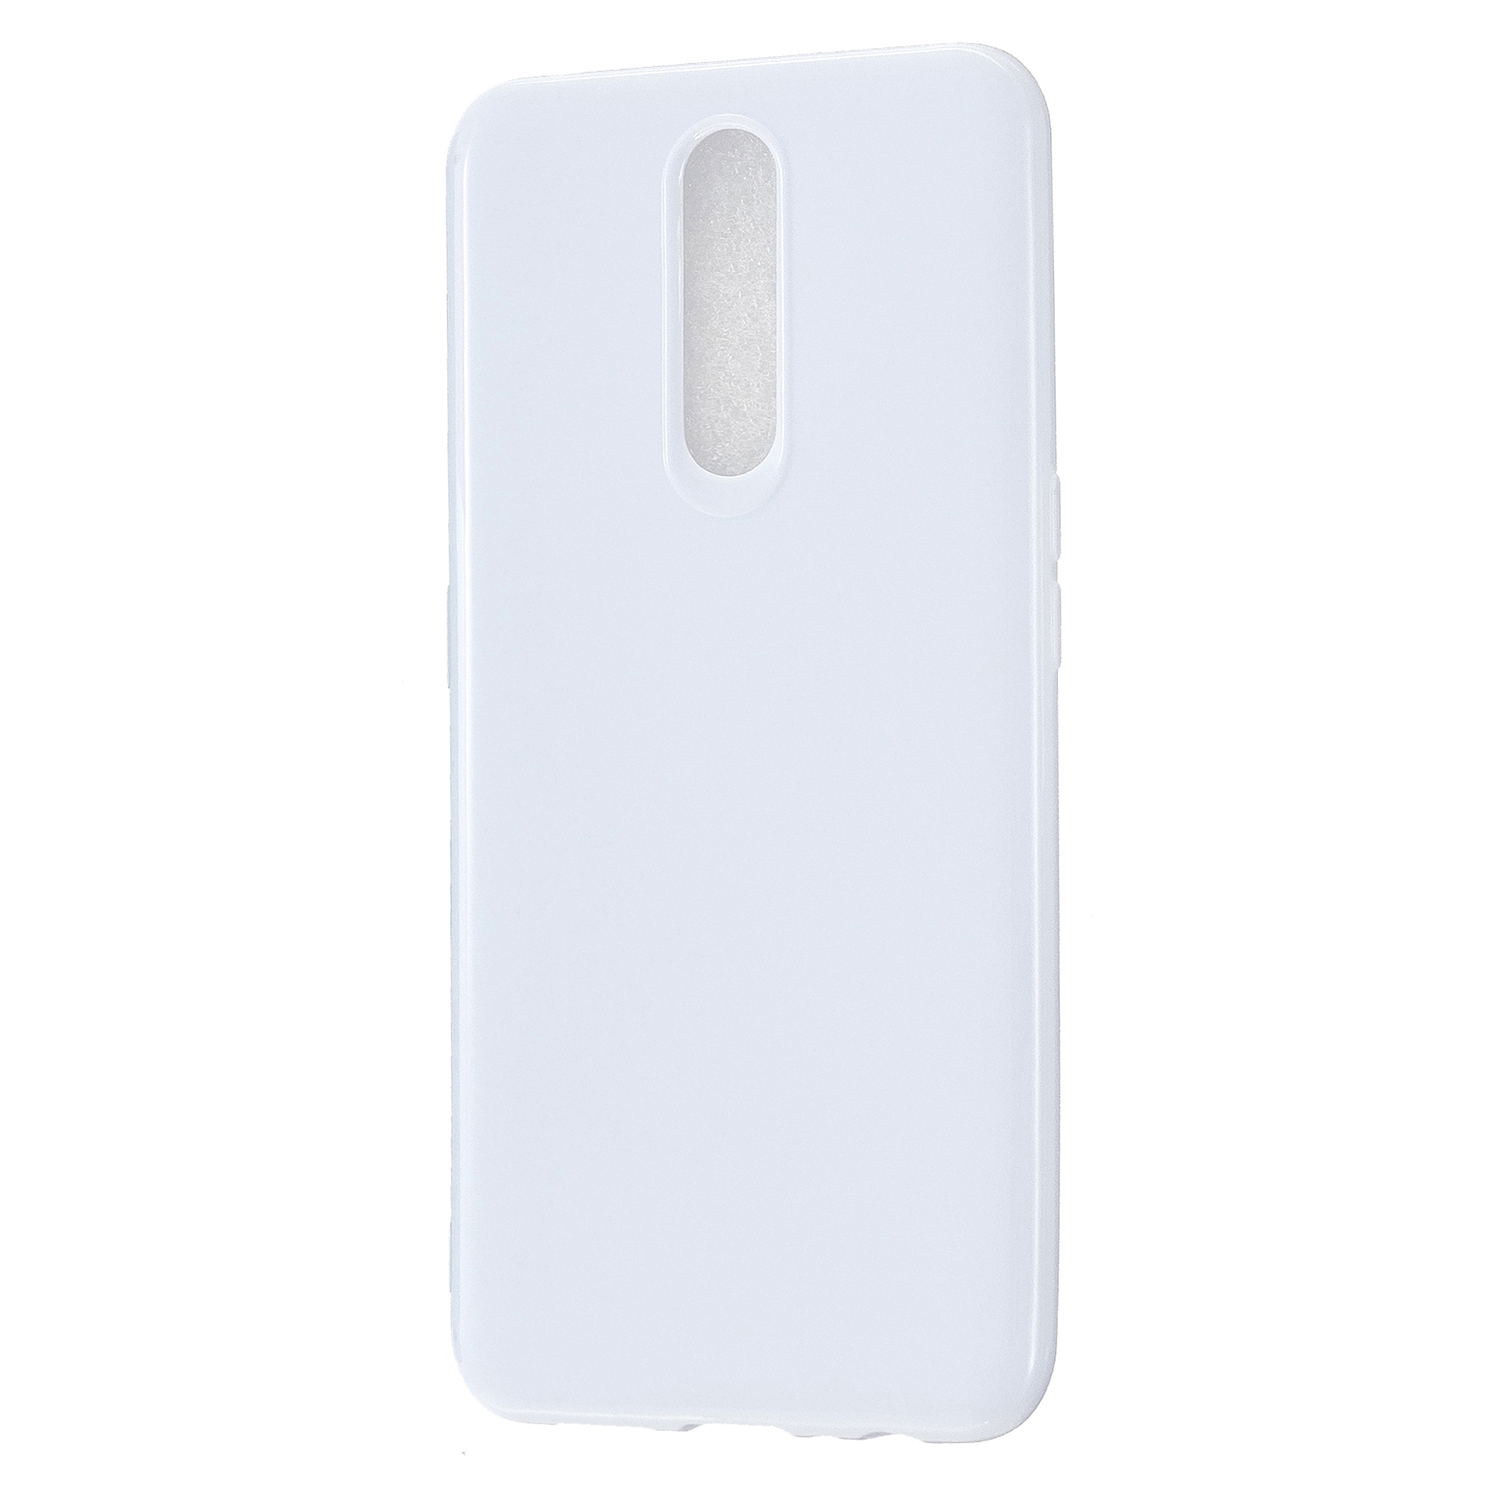 For OPPO F11/F11 Pro Cellphone Cover Glossy TPU Simple Profile Bumper Protective Mobile Phone Case Milk white